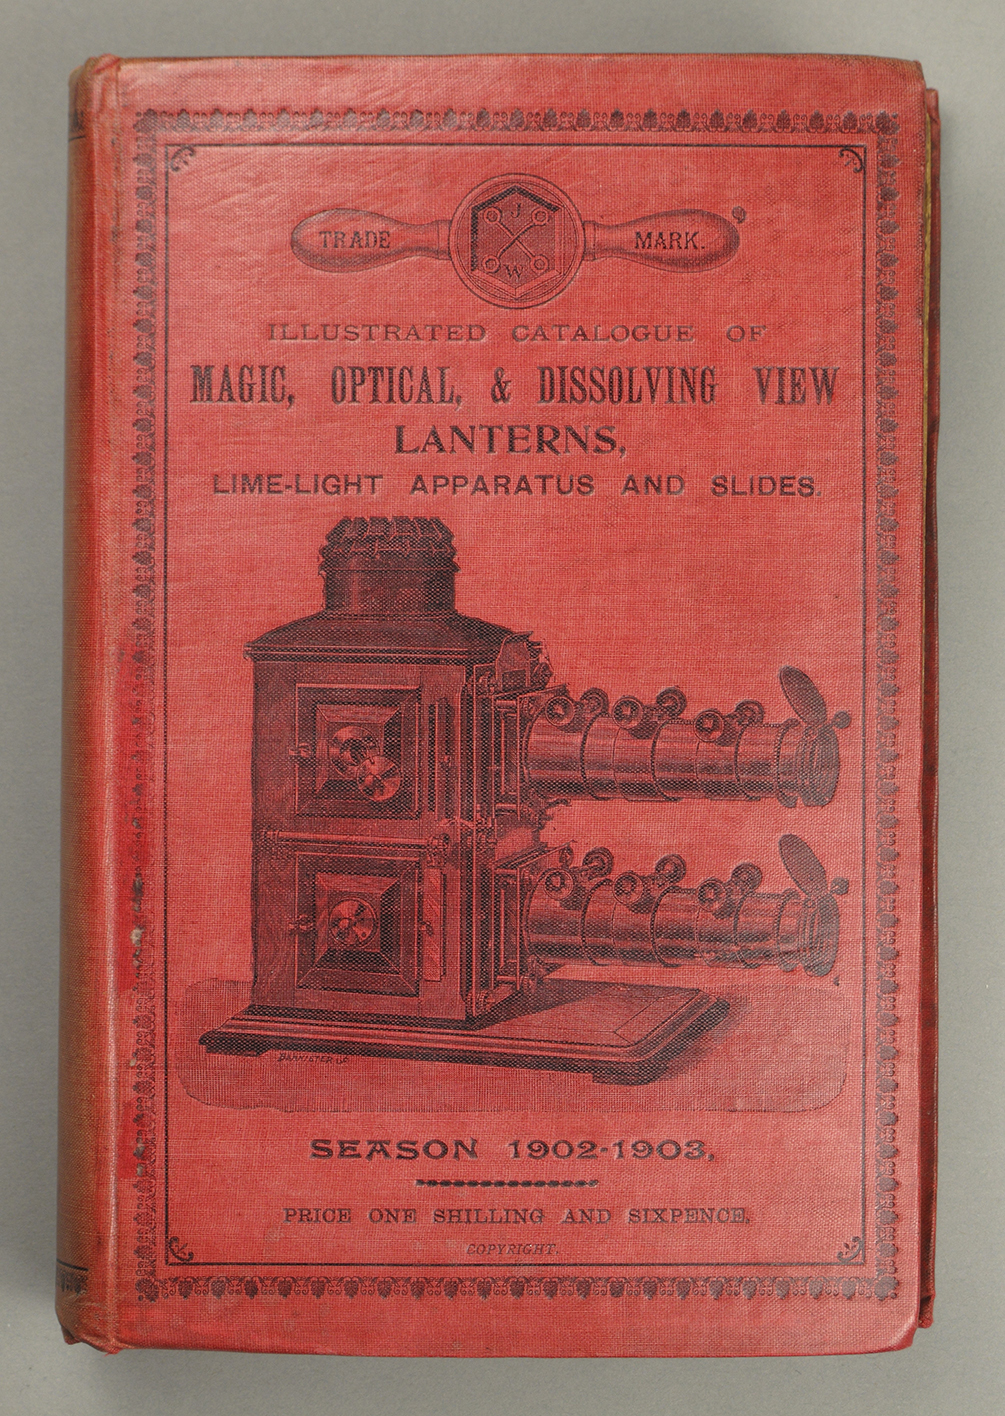 Illustrated Catalogue of Magic, Optical and Dissolving View